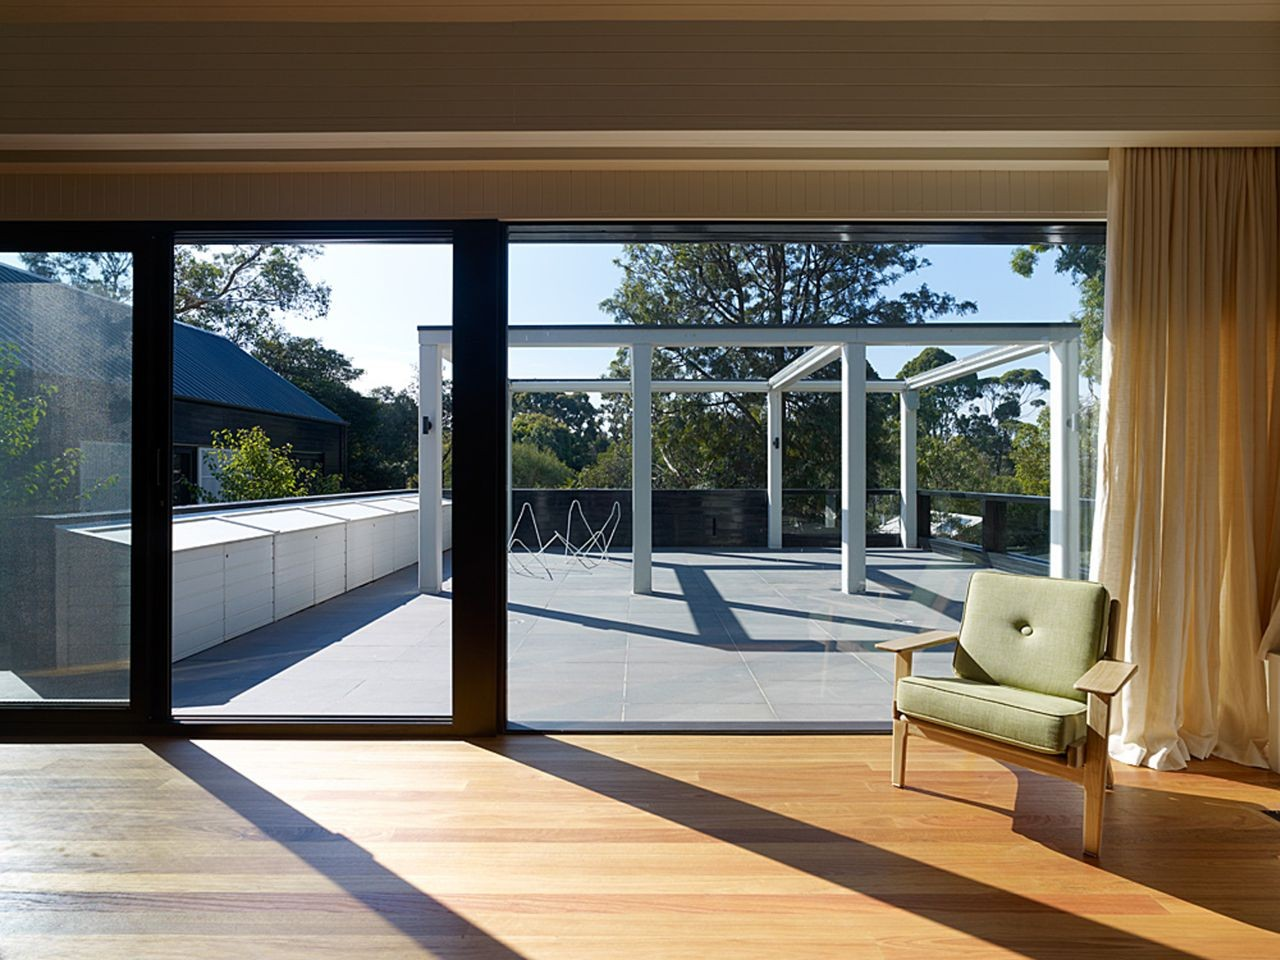 Blake street b e architecture archdaily for Oversized sliding glass doors